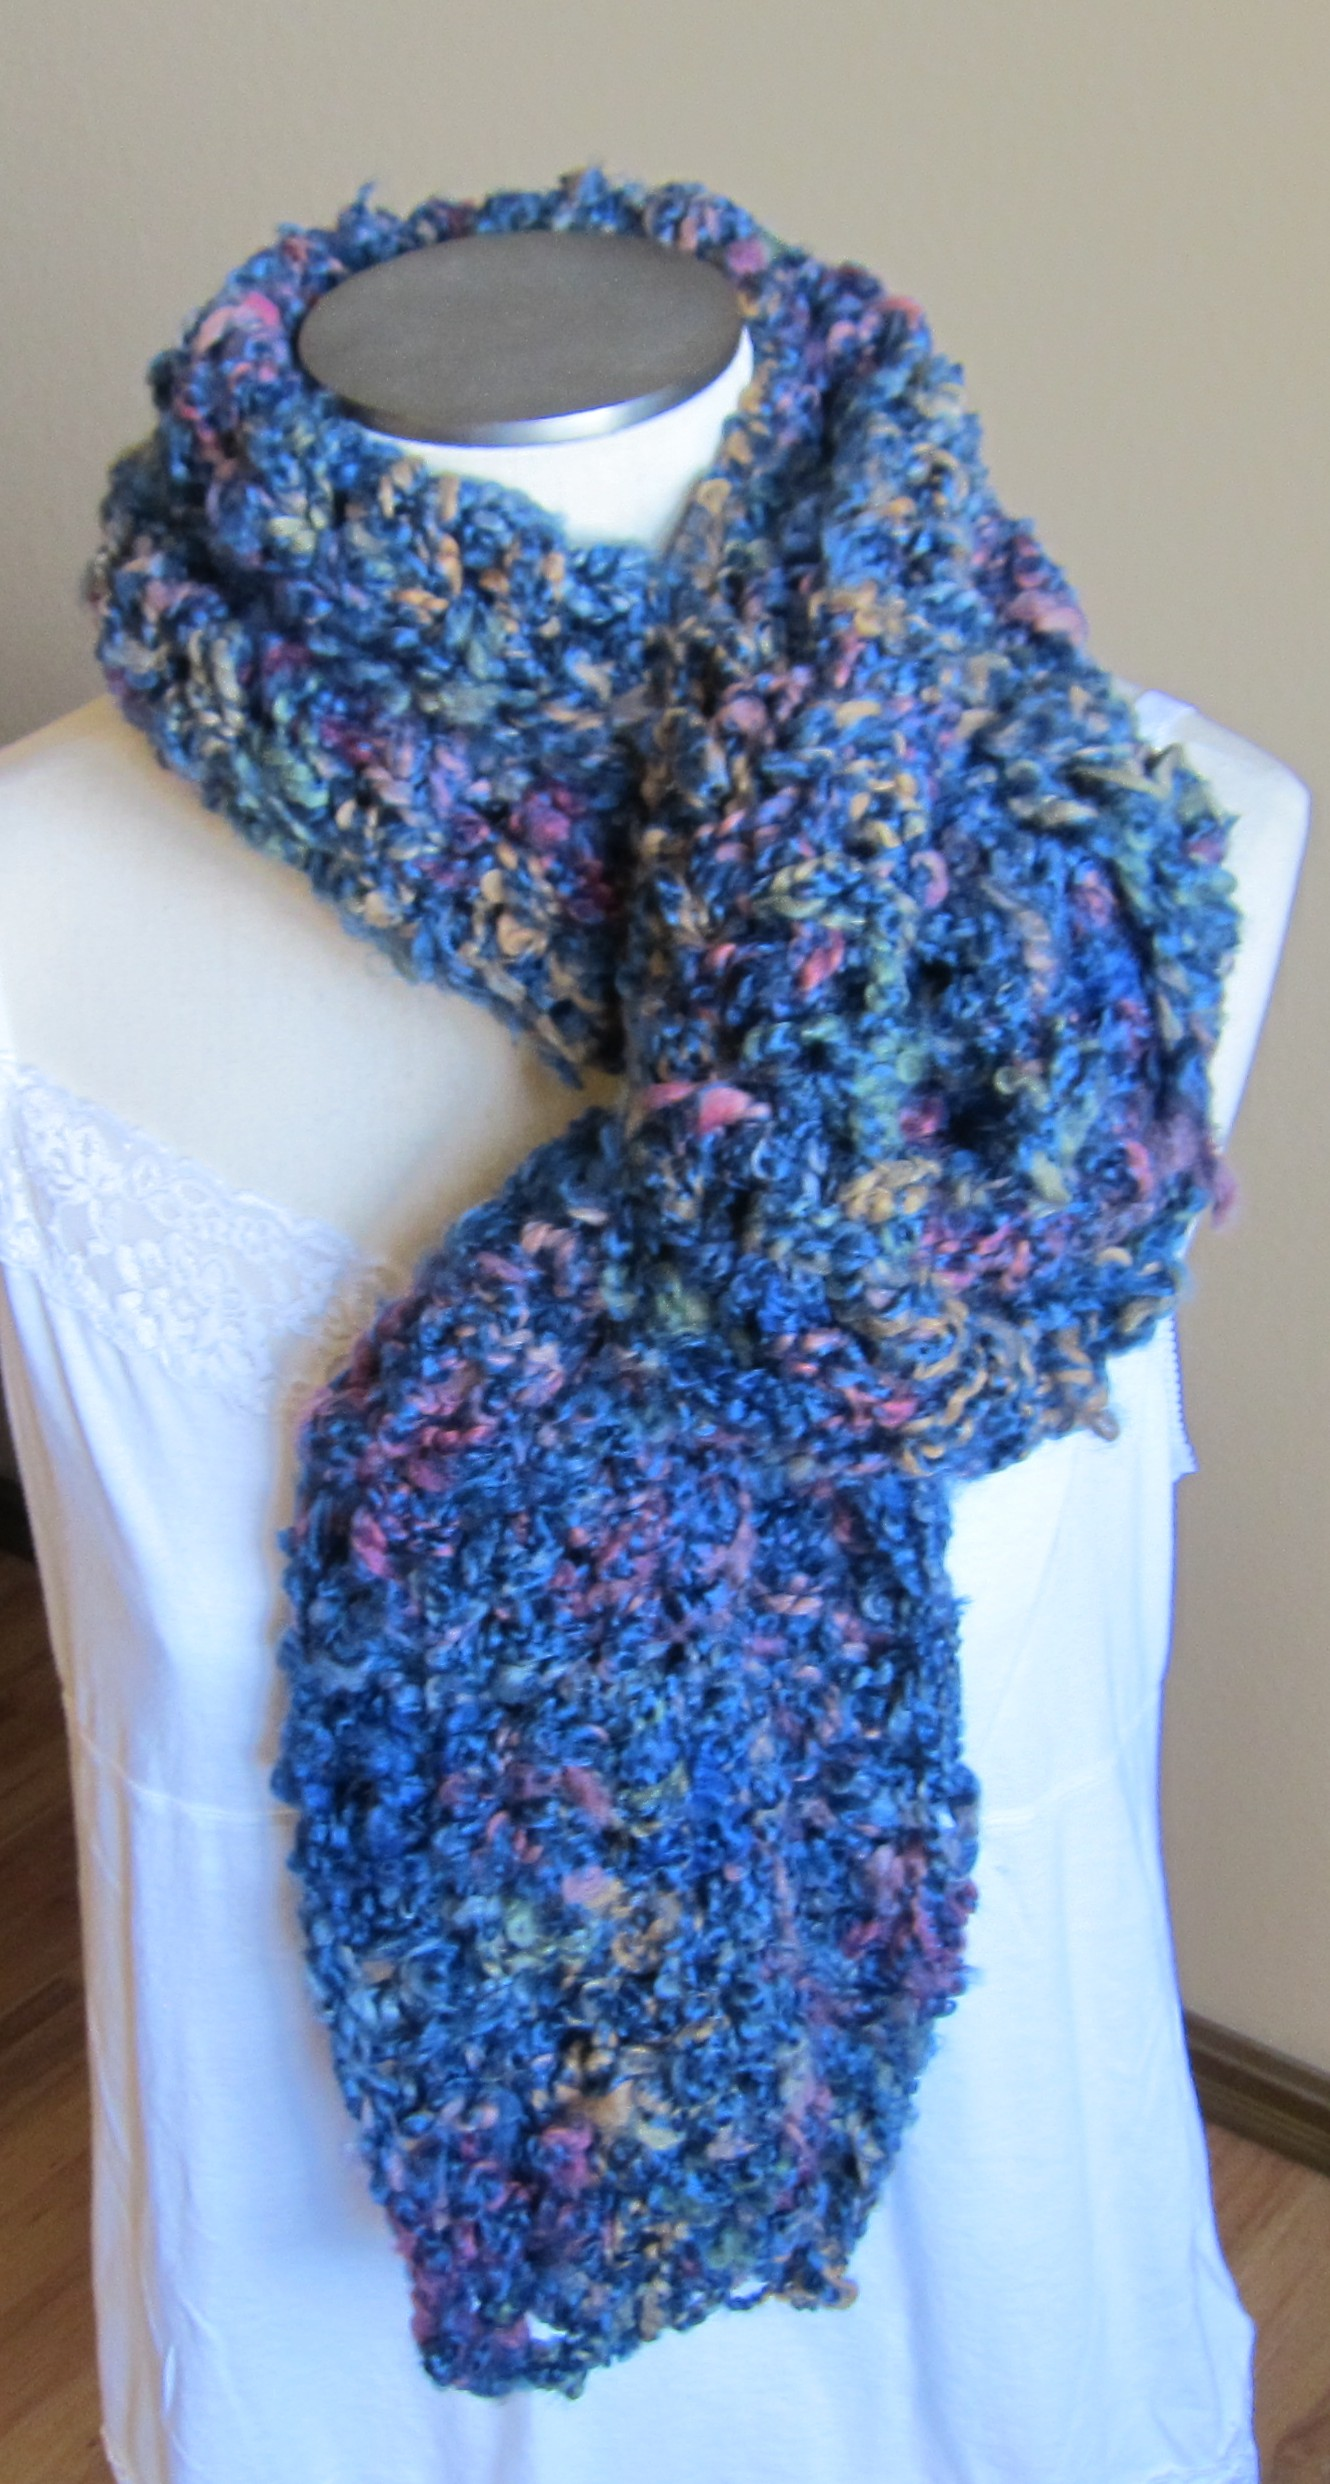 Crocheting With Thick Yarn : Crochet Scarf in Blue Multi Color Thick Yarn ? KitkatCrochets ...